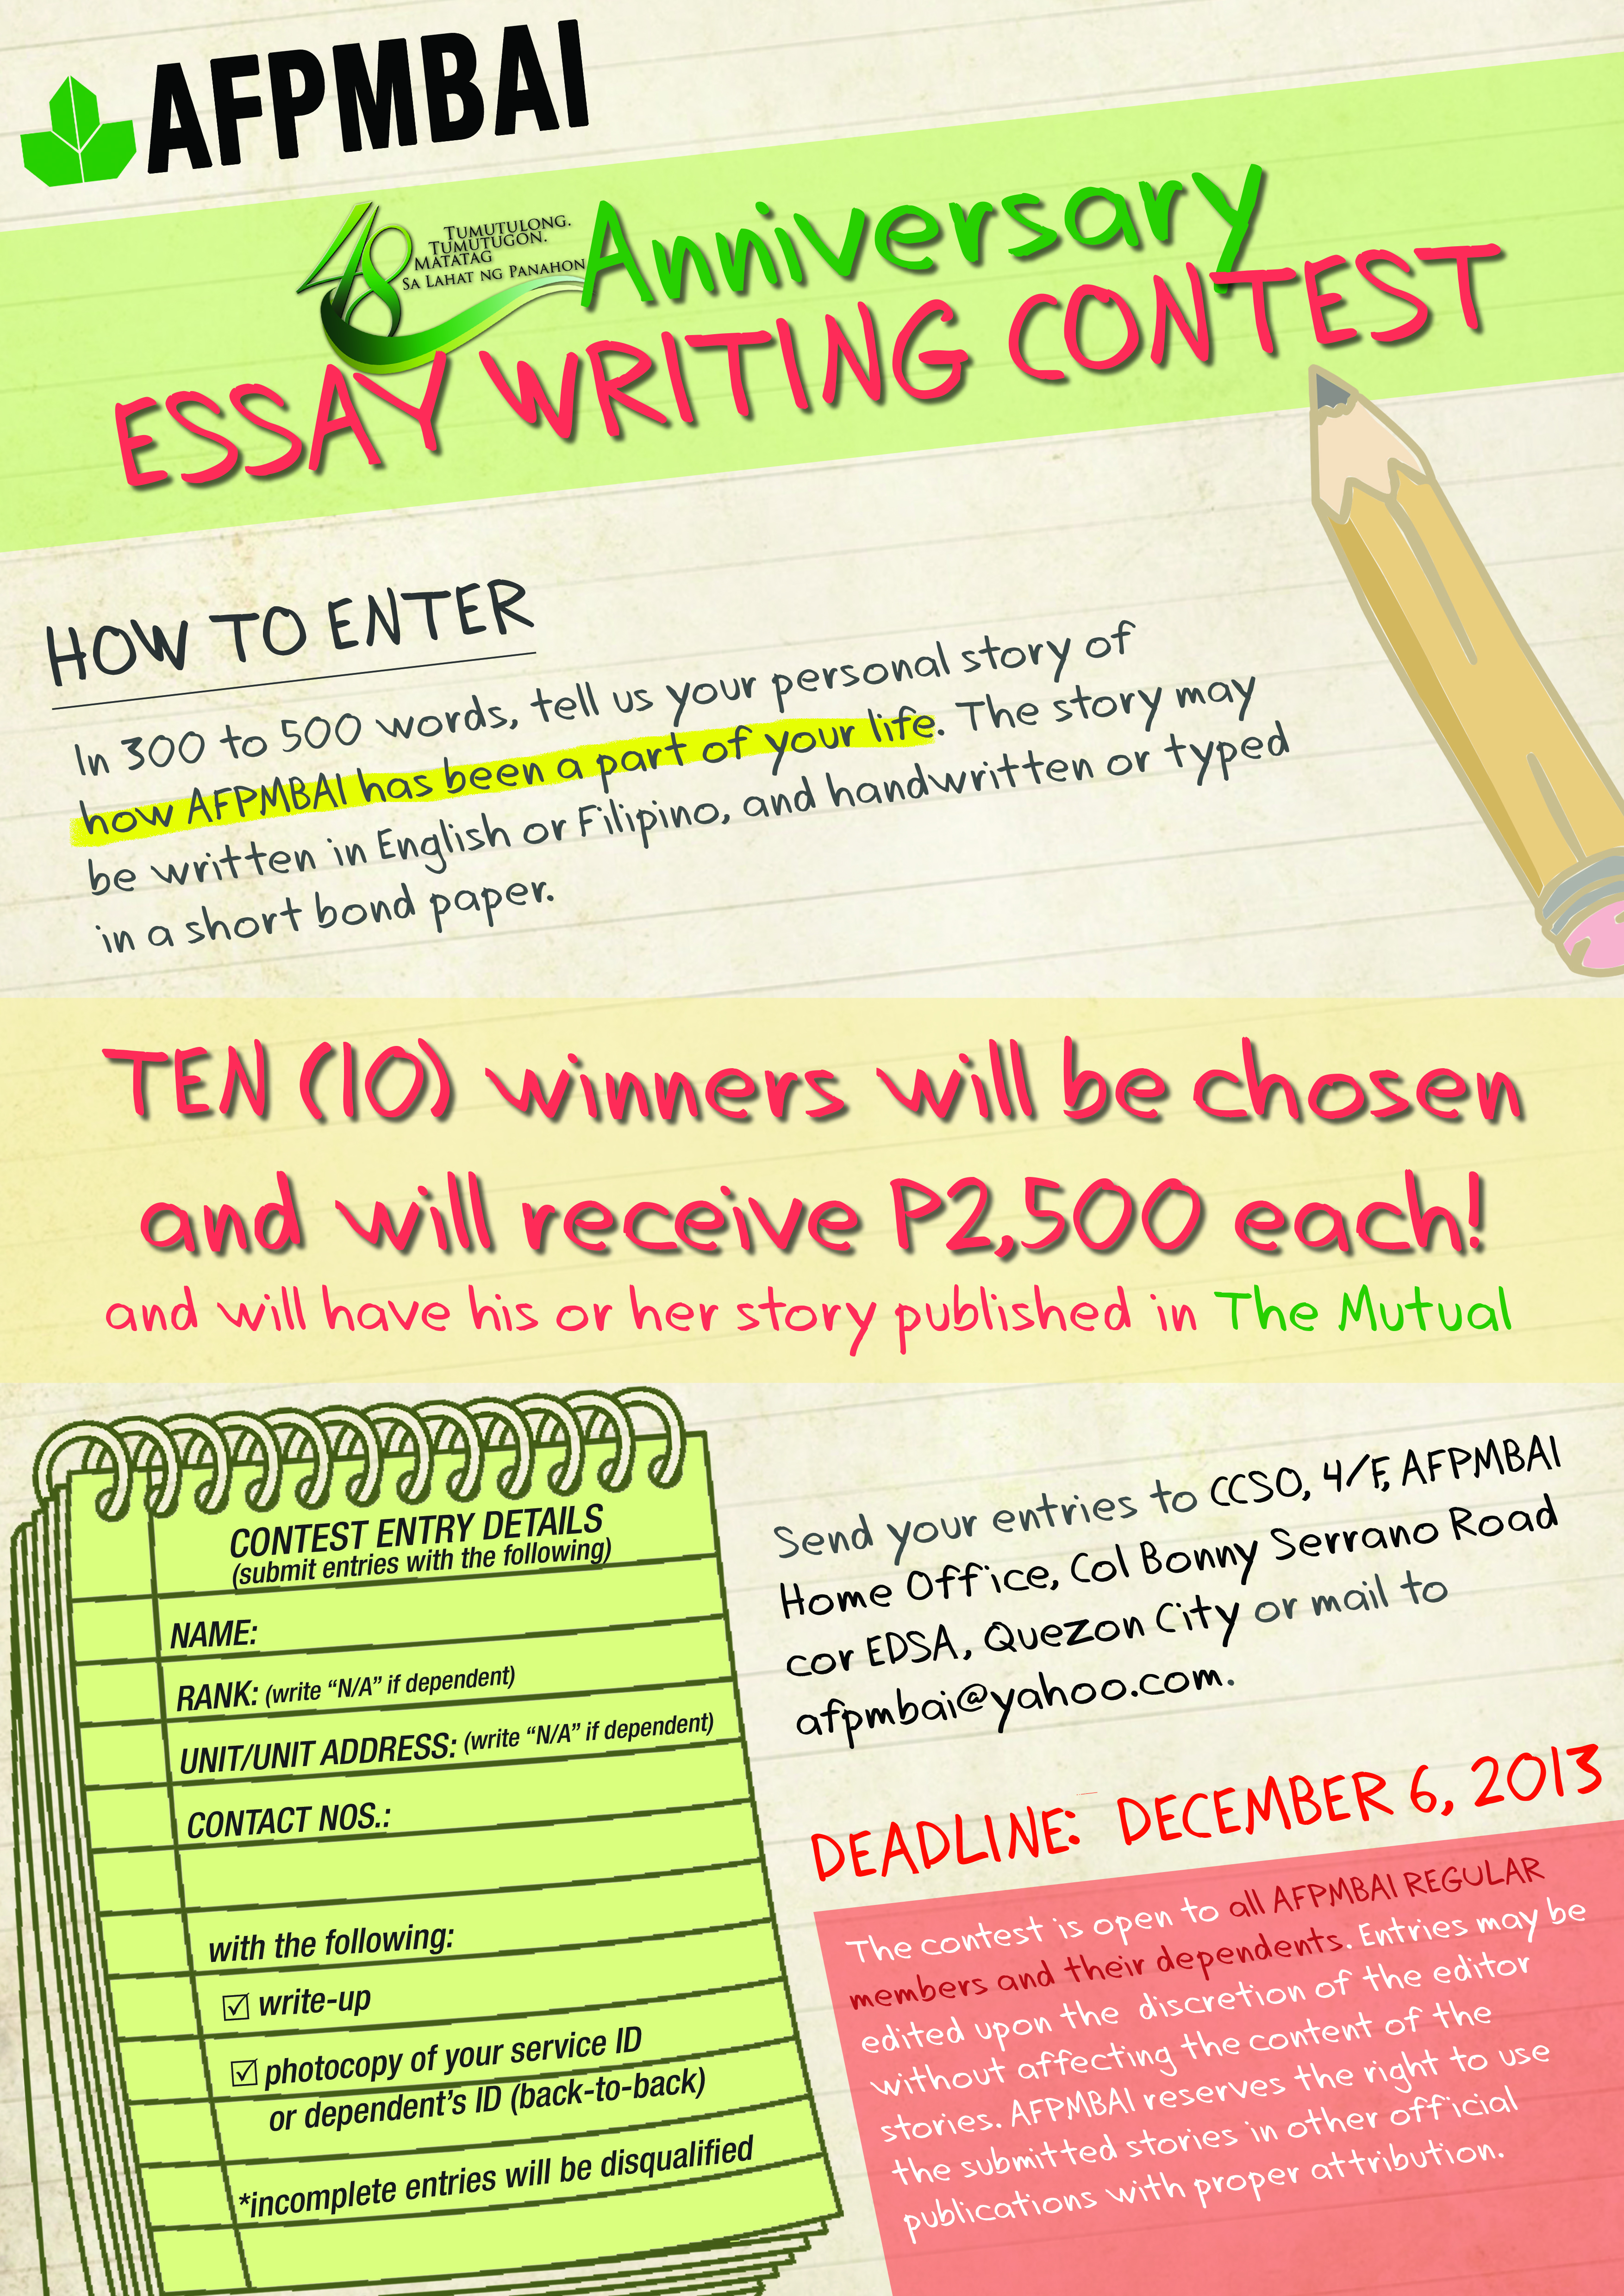 003 Essay Example Writing Contest Competition Essays About For Nutrition Month P Objectives Rubrics Philippines Mechanics Criteria Tips Incredible College Students By Essayhub Sample Full